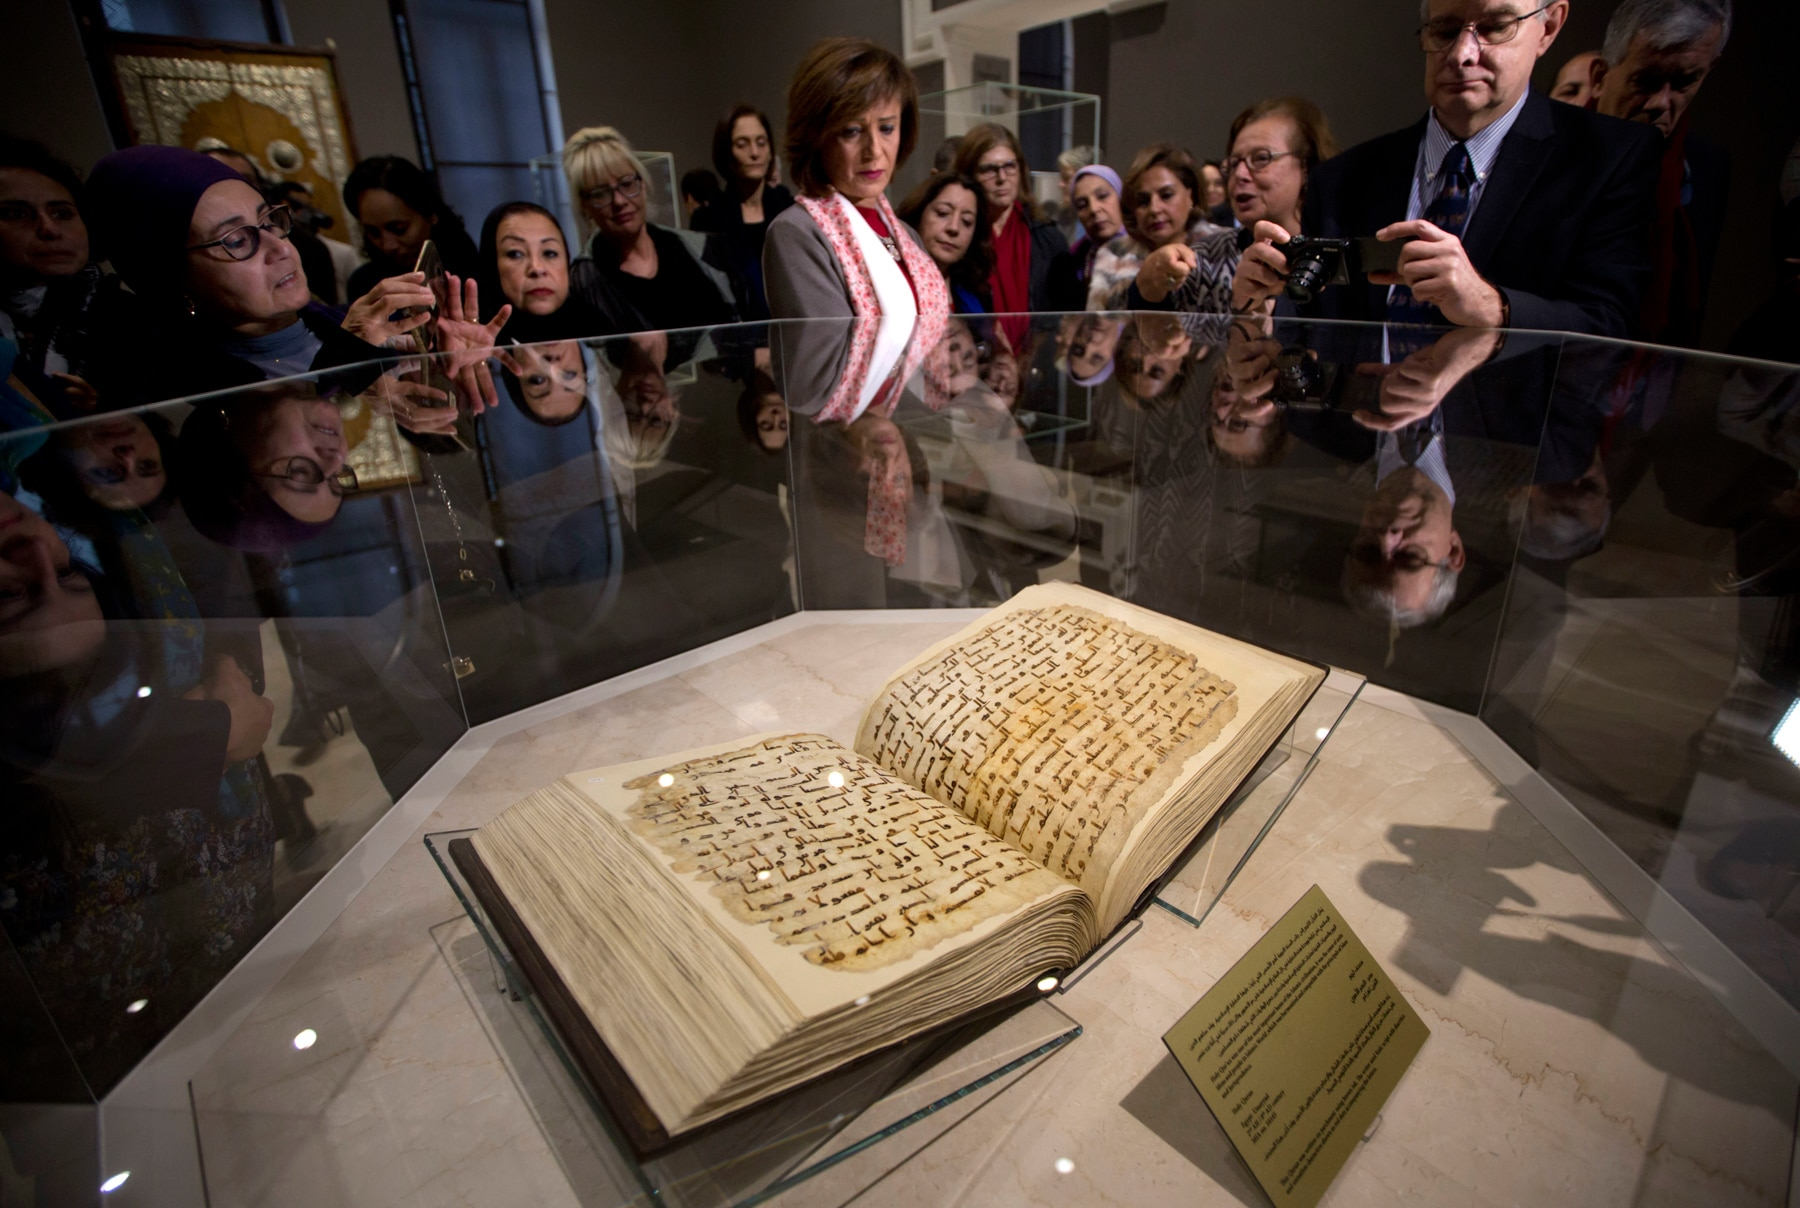 People looking at glass-enclosed book (© AP Images)